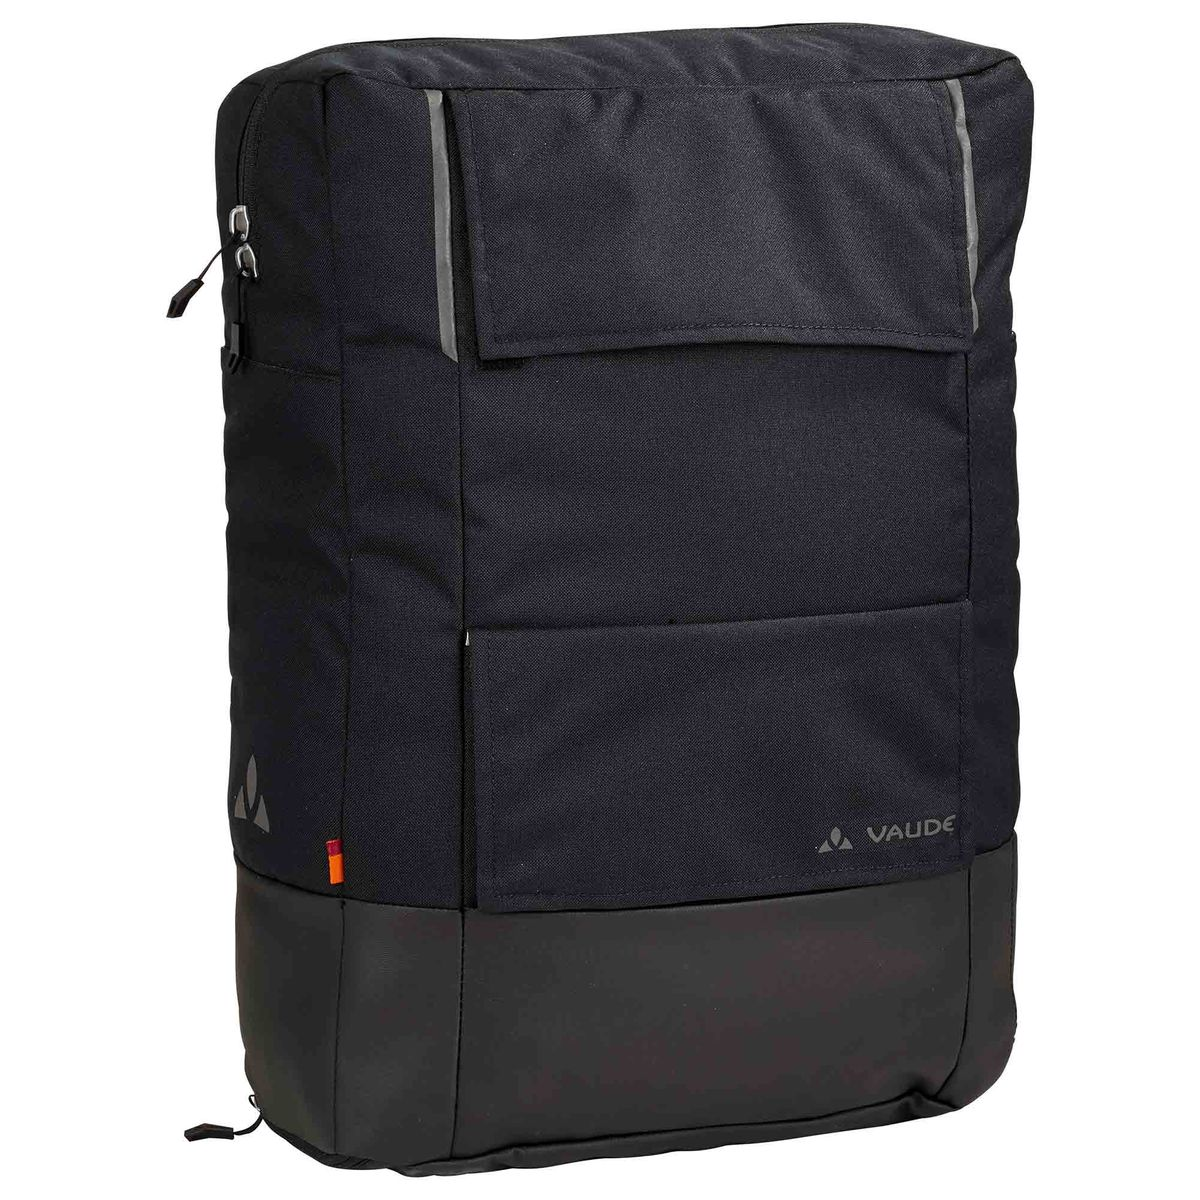 CYCLIST PACK Rucksack